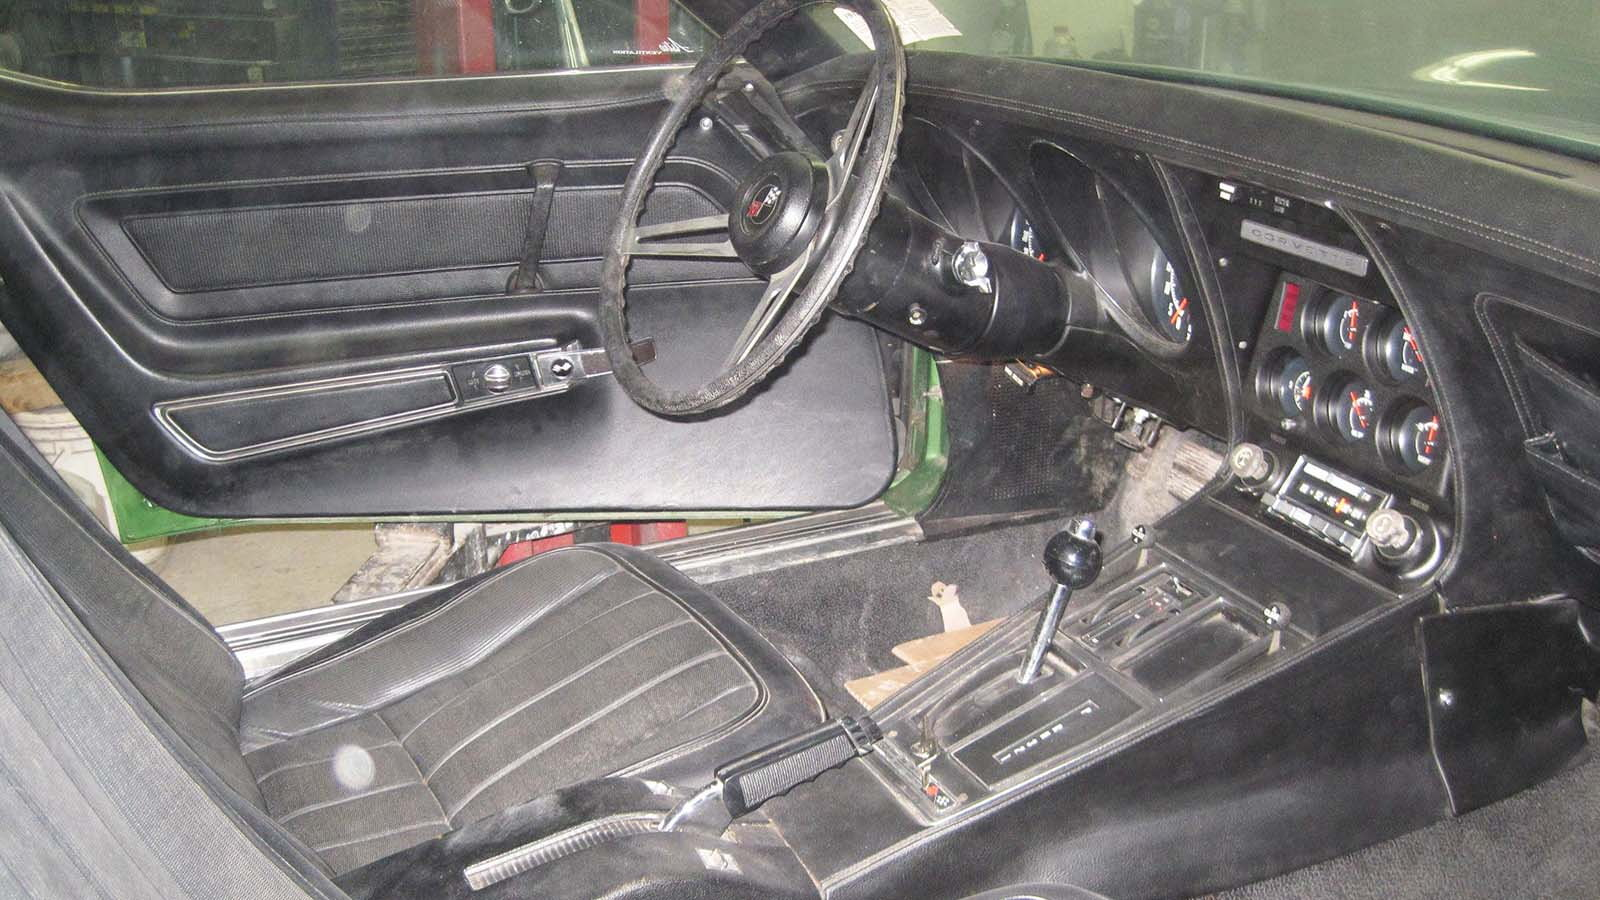 A dusty interior